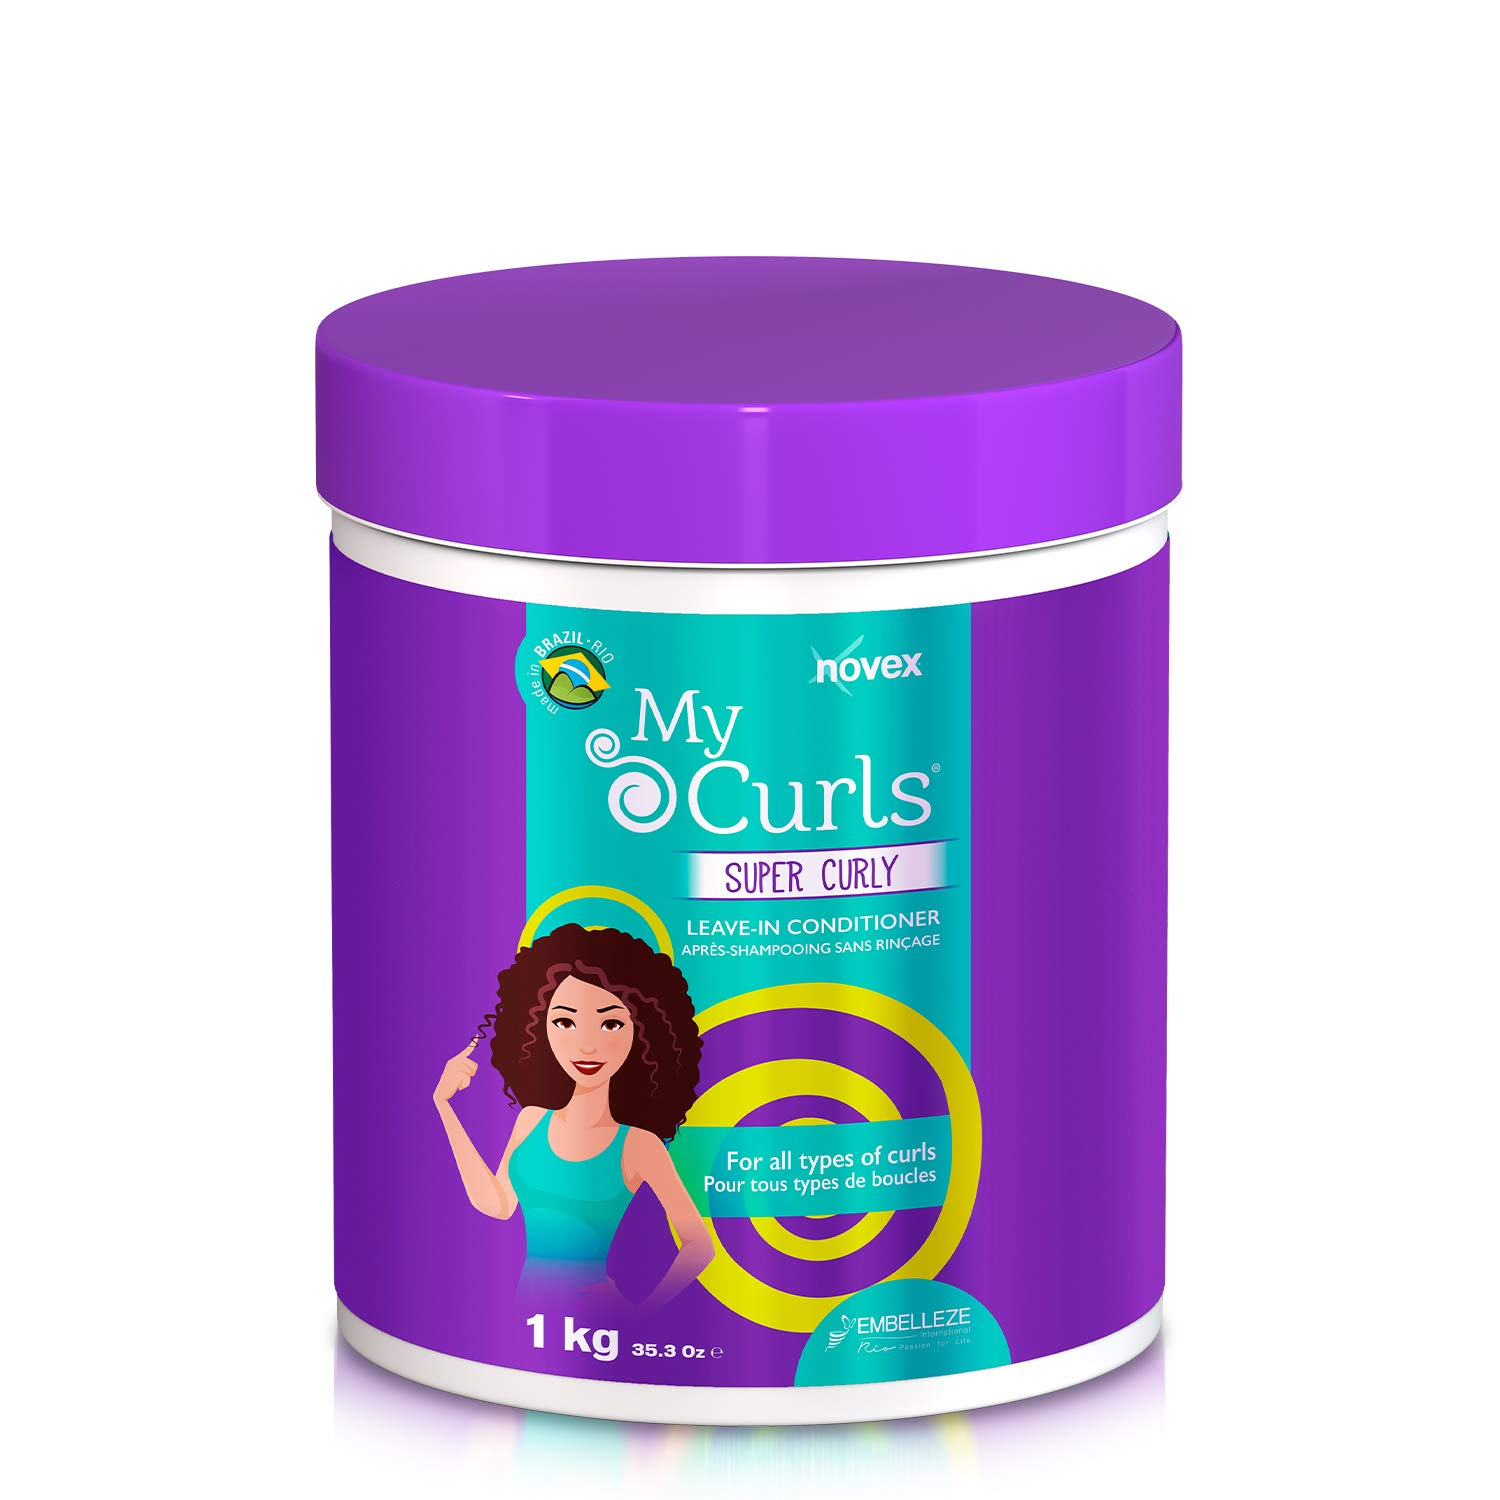 Large-scale sale NOVEX Deluxe My Curls Super Curly Deep IN 35 Conditioner - oz. LEAVE